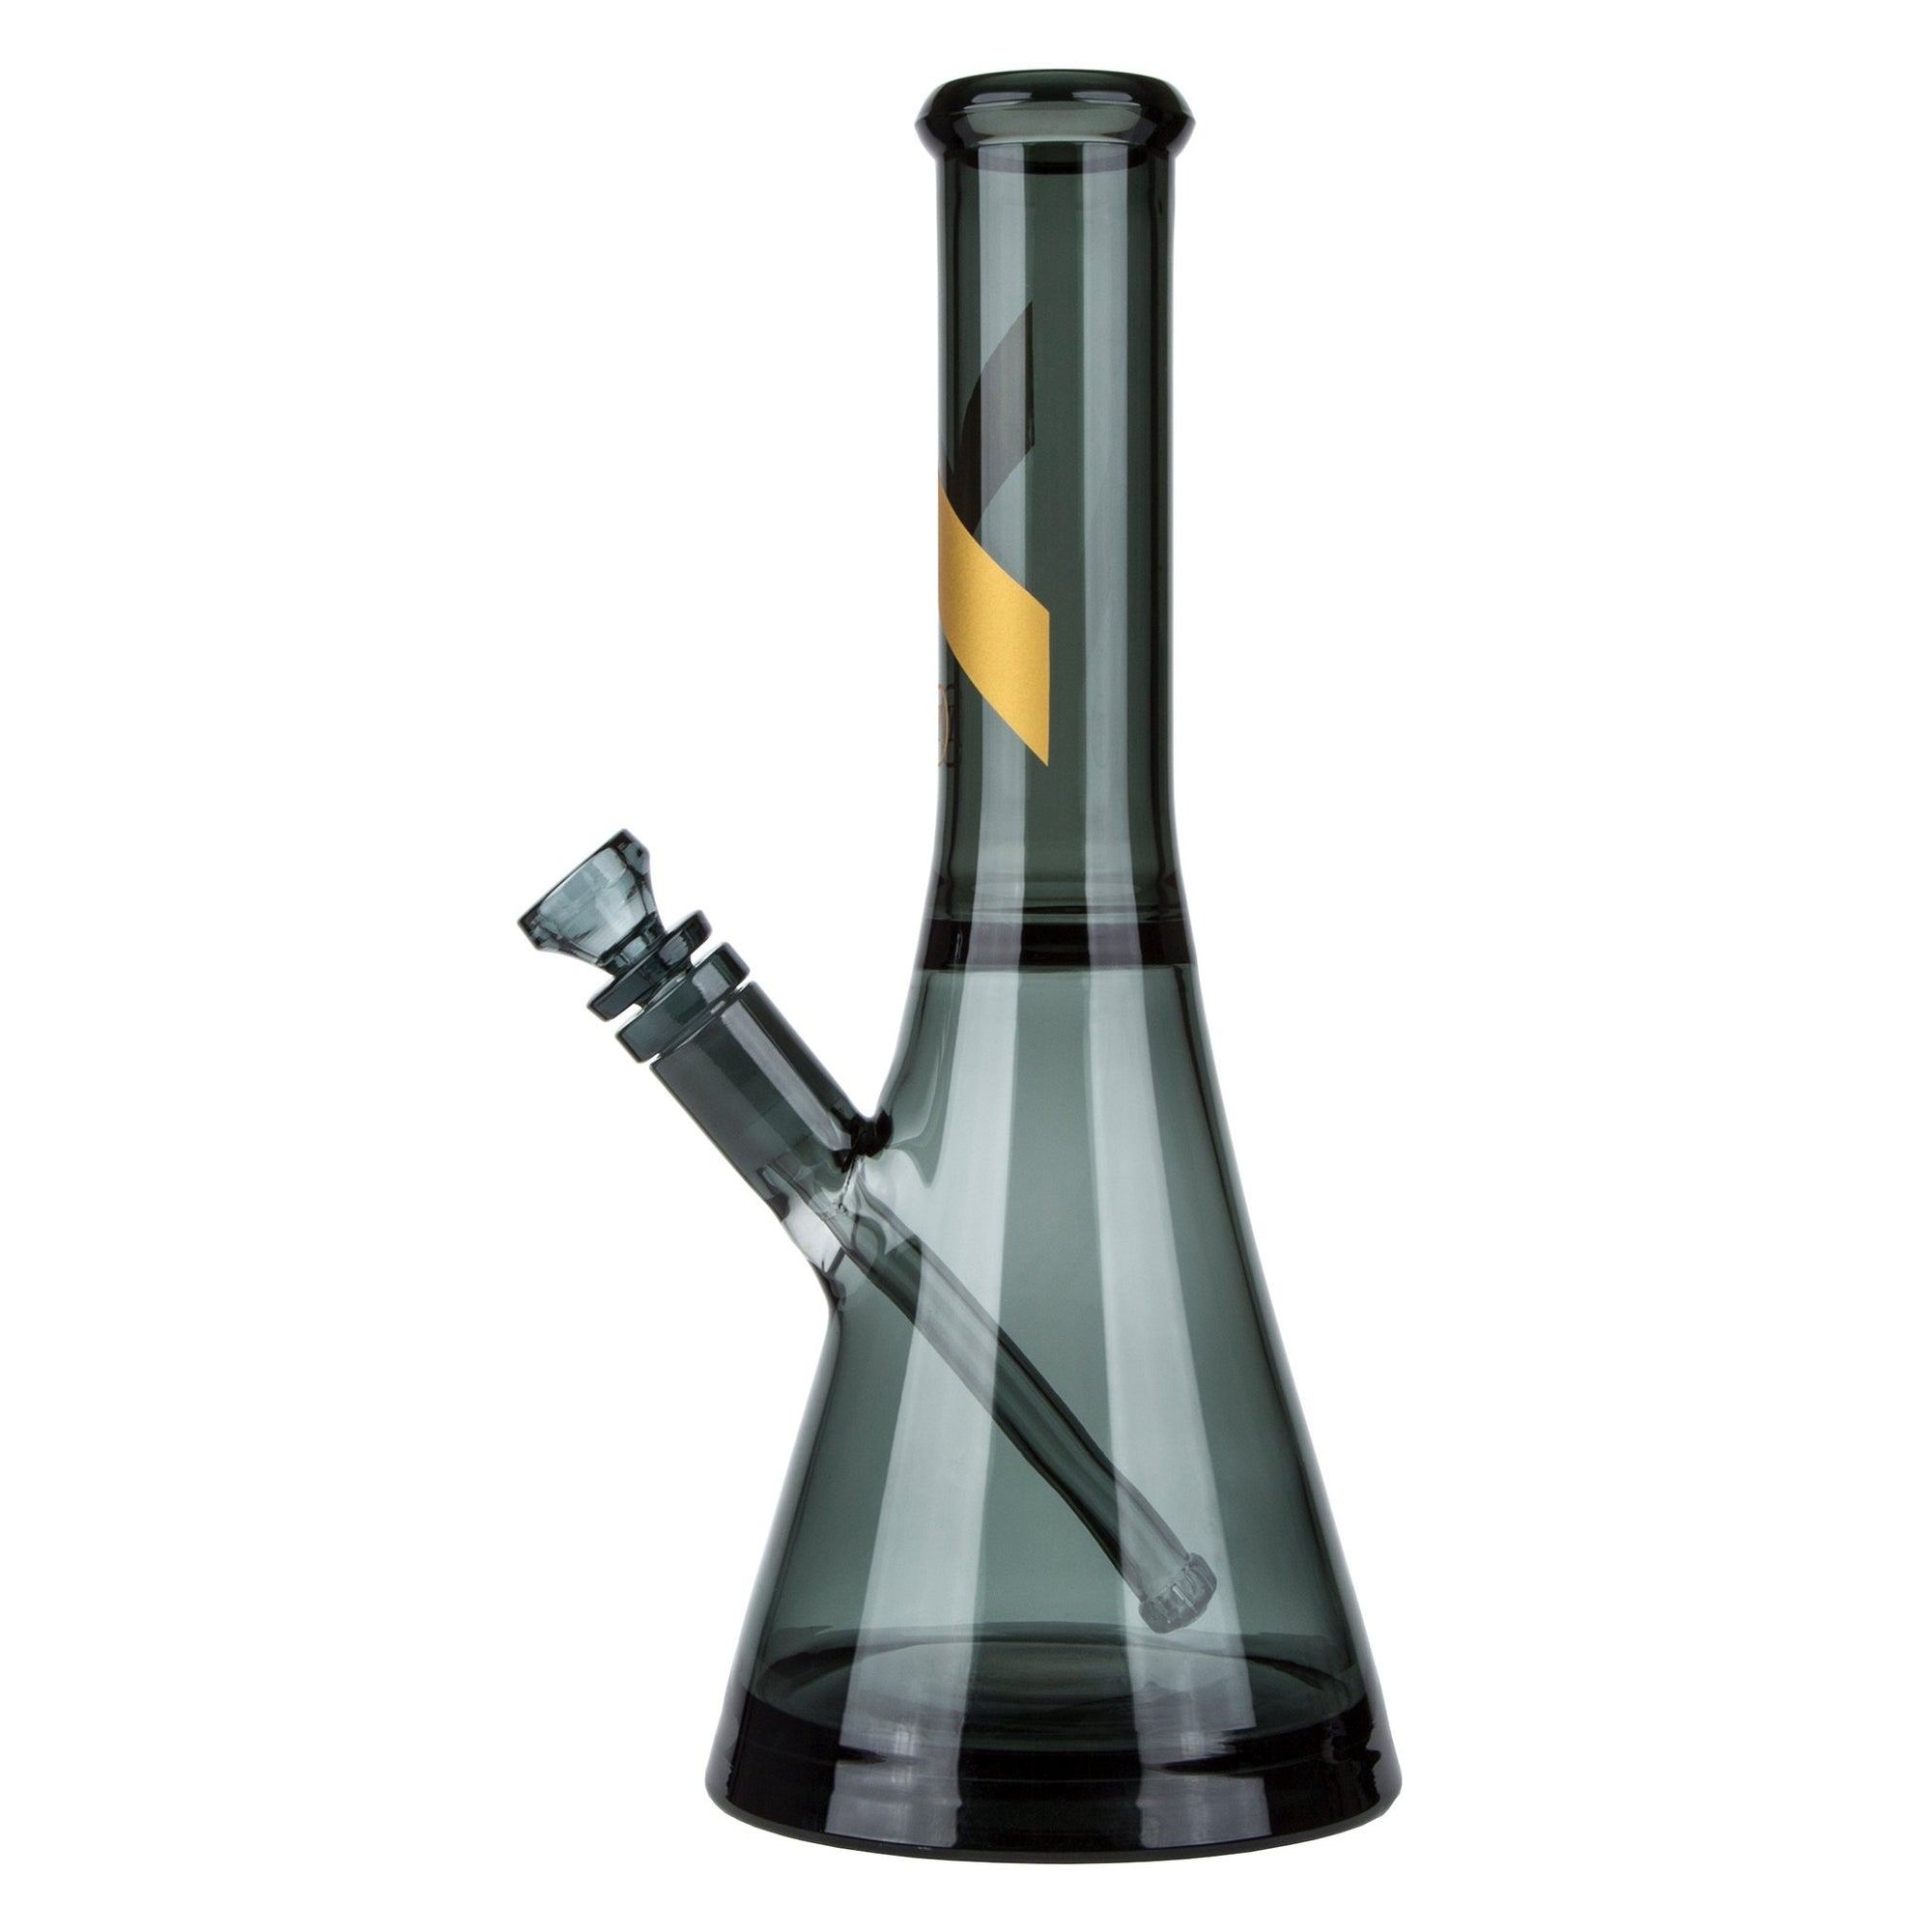 Full shot of classy 13 inch smoked glass gray beaker bong water pipe with gold accent on neck and bowl on left